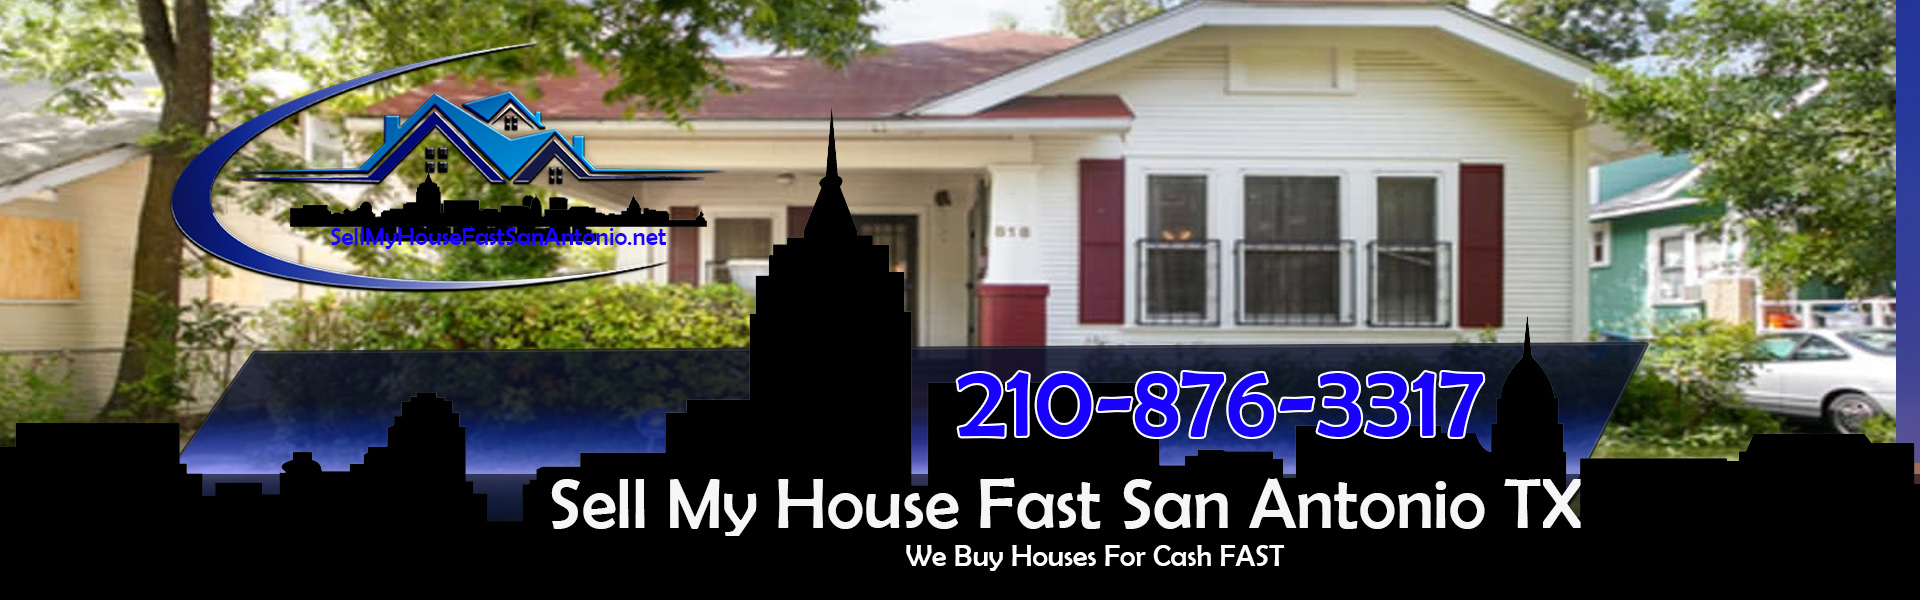 A San Antonio We Buy Houses image of a house where we can sell my house fast for cash in San Antonio